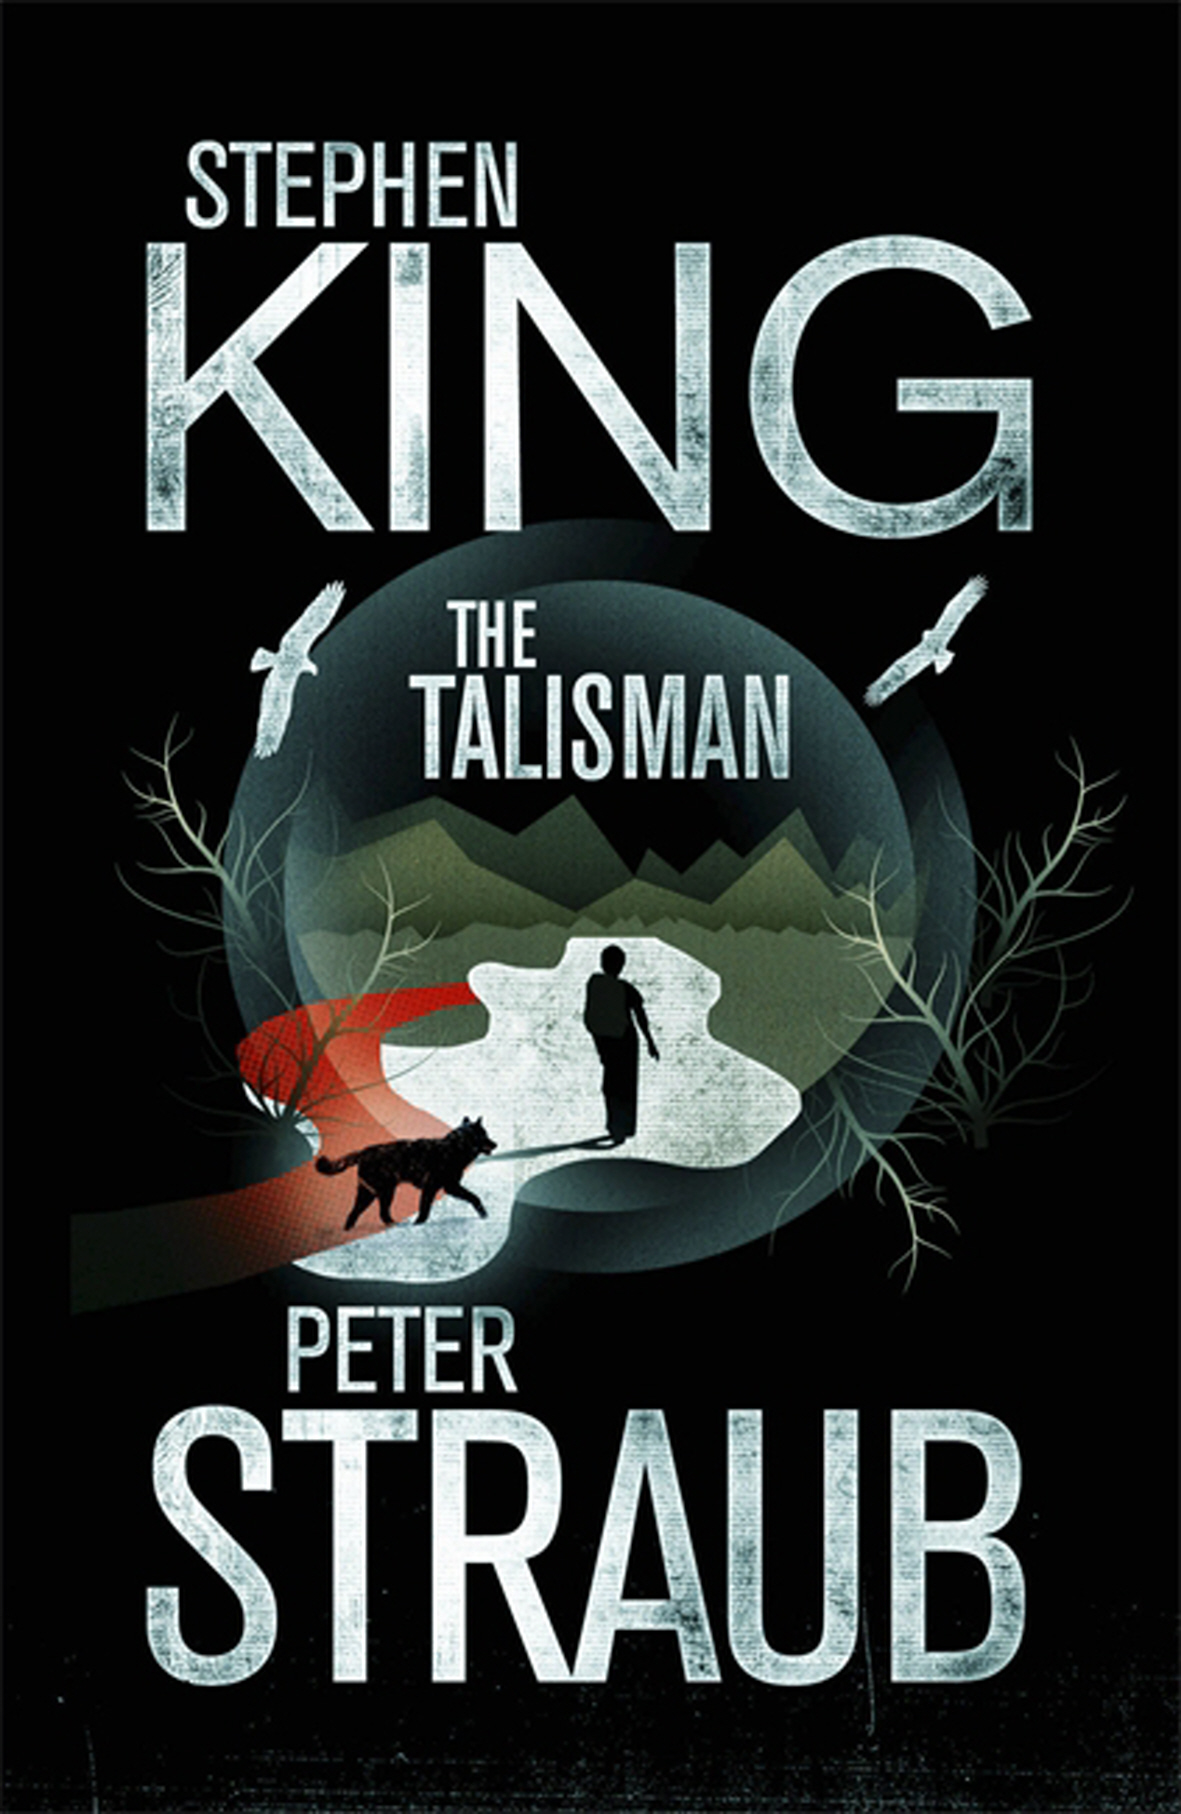 """an introduction to the life of peter straub """"peter straub has created a literary form all of his own, mating the macabre with the magical, interweaving the psychological with the uncanny, illuminating the dark side of humanity with the light of the fantastic."""